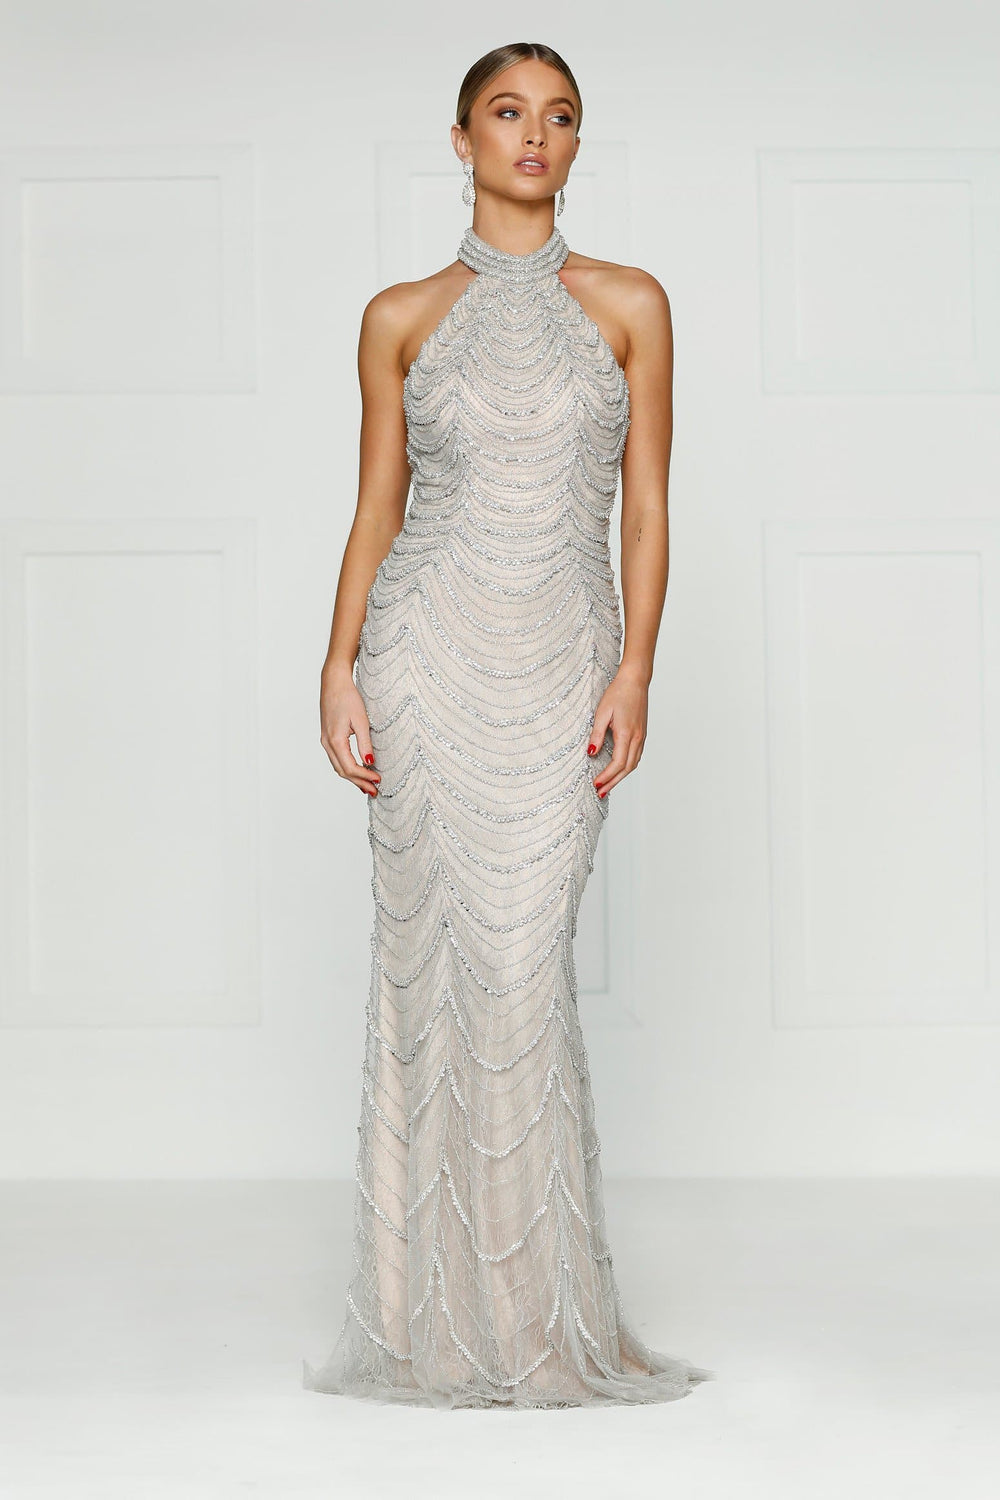 Mallory - Sleeveless Beaded Gown with Halter Neck & Open Back